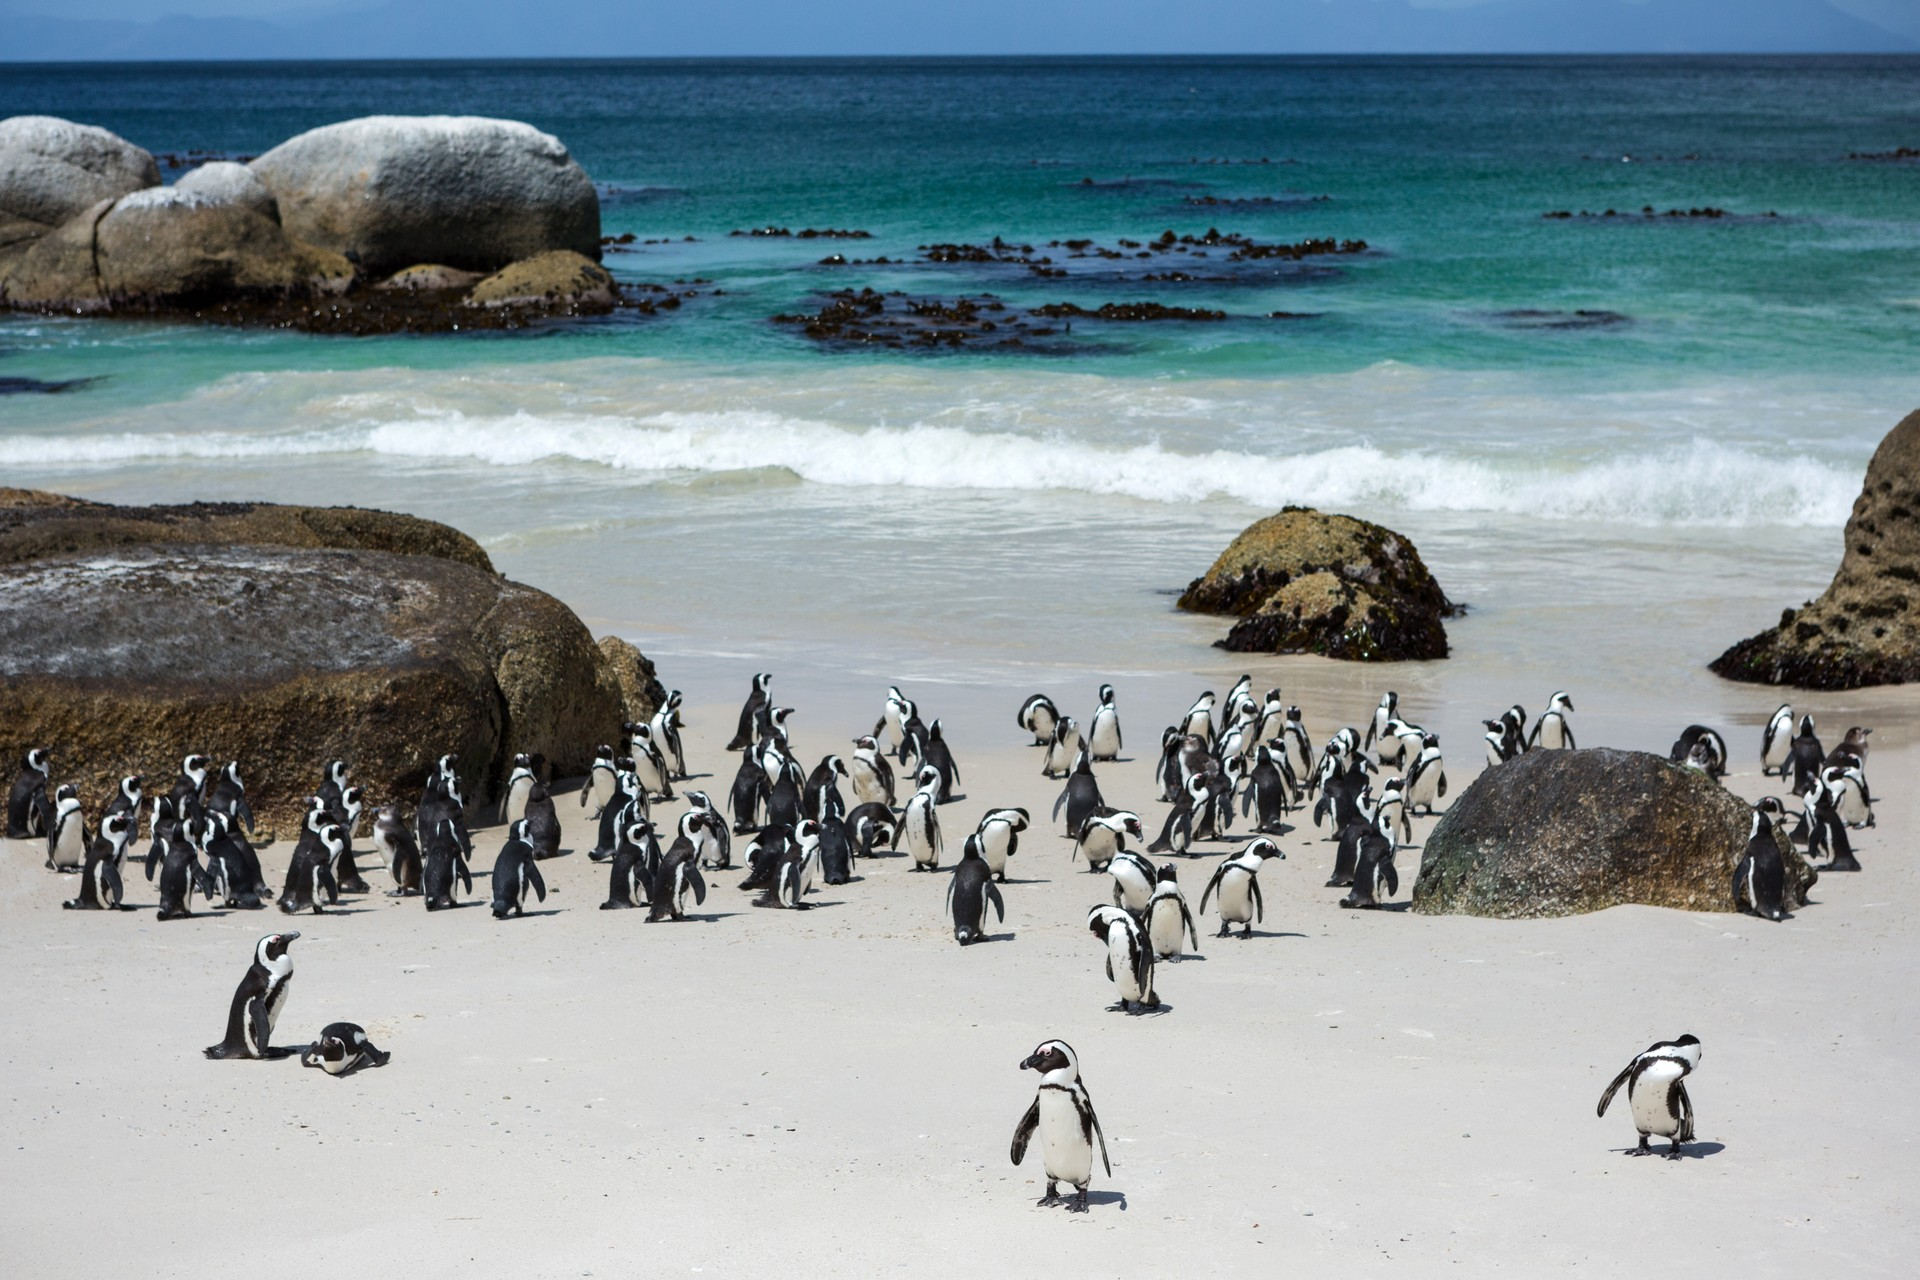 Penguins congregating on Boulders Beach